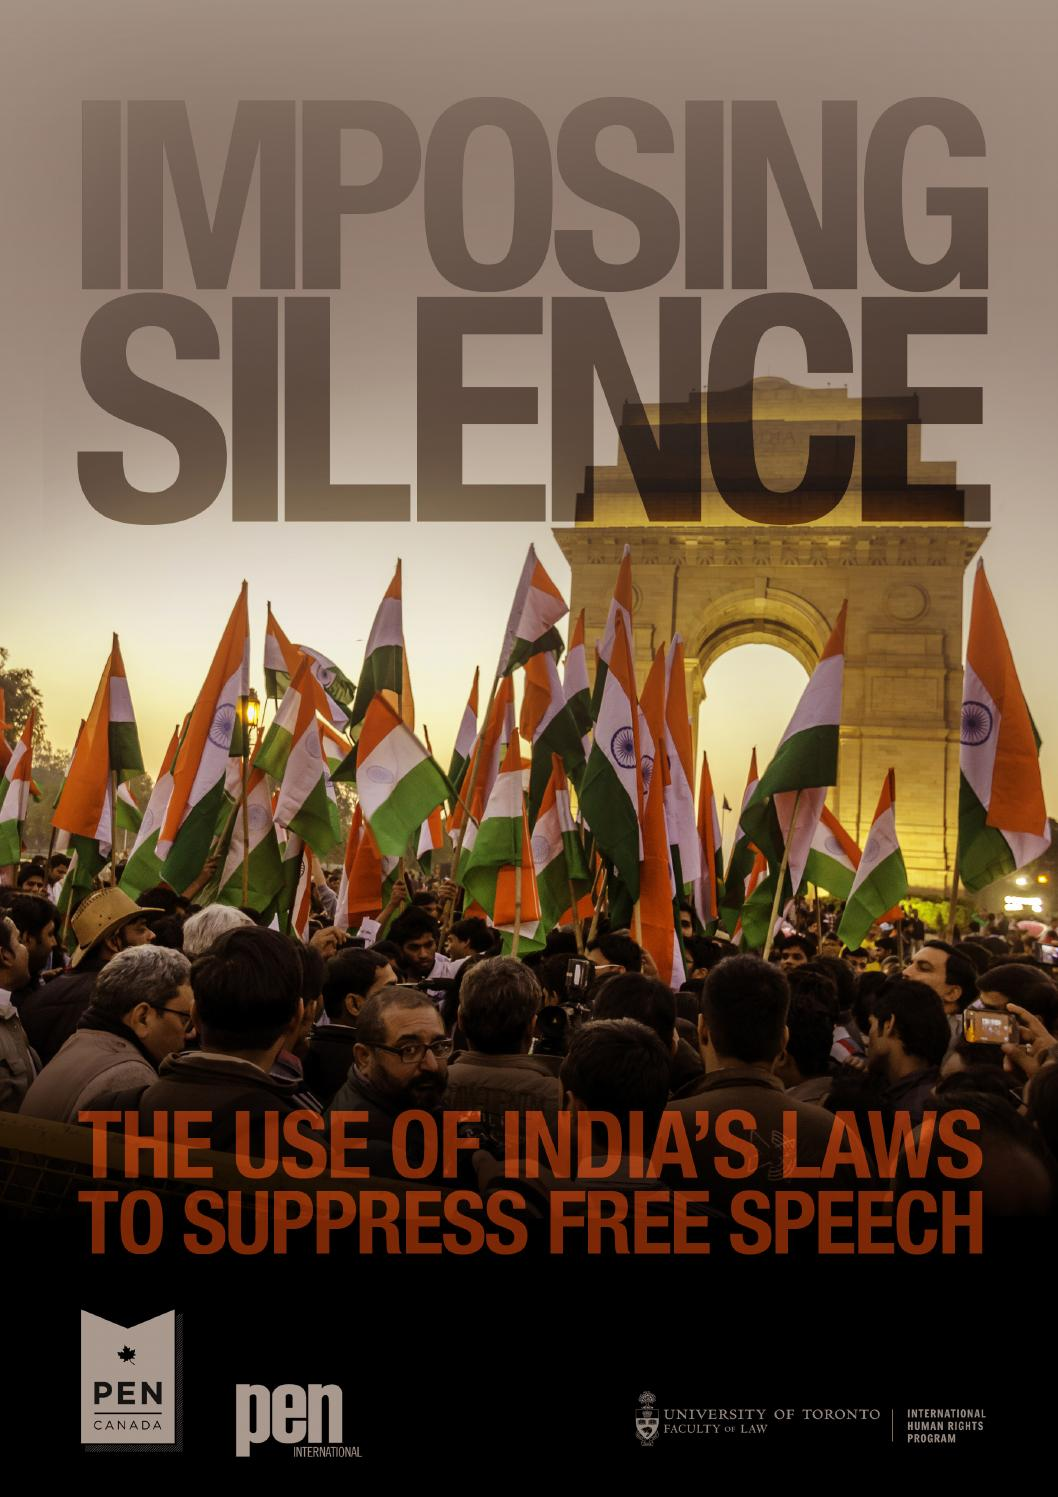 Imposing Silence: The Use of India's Laws to Suppress Free